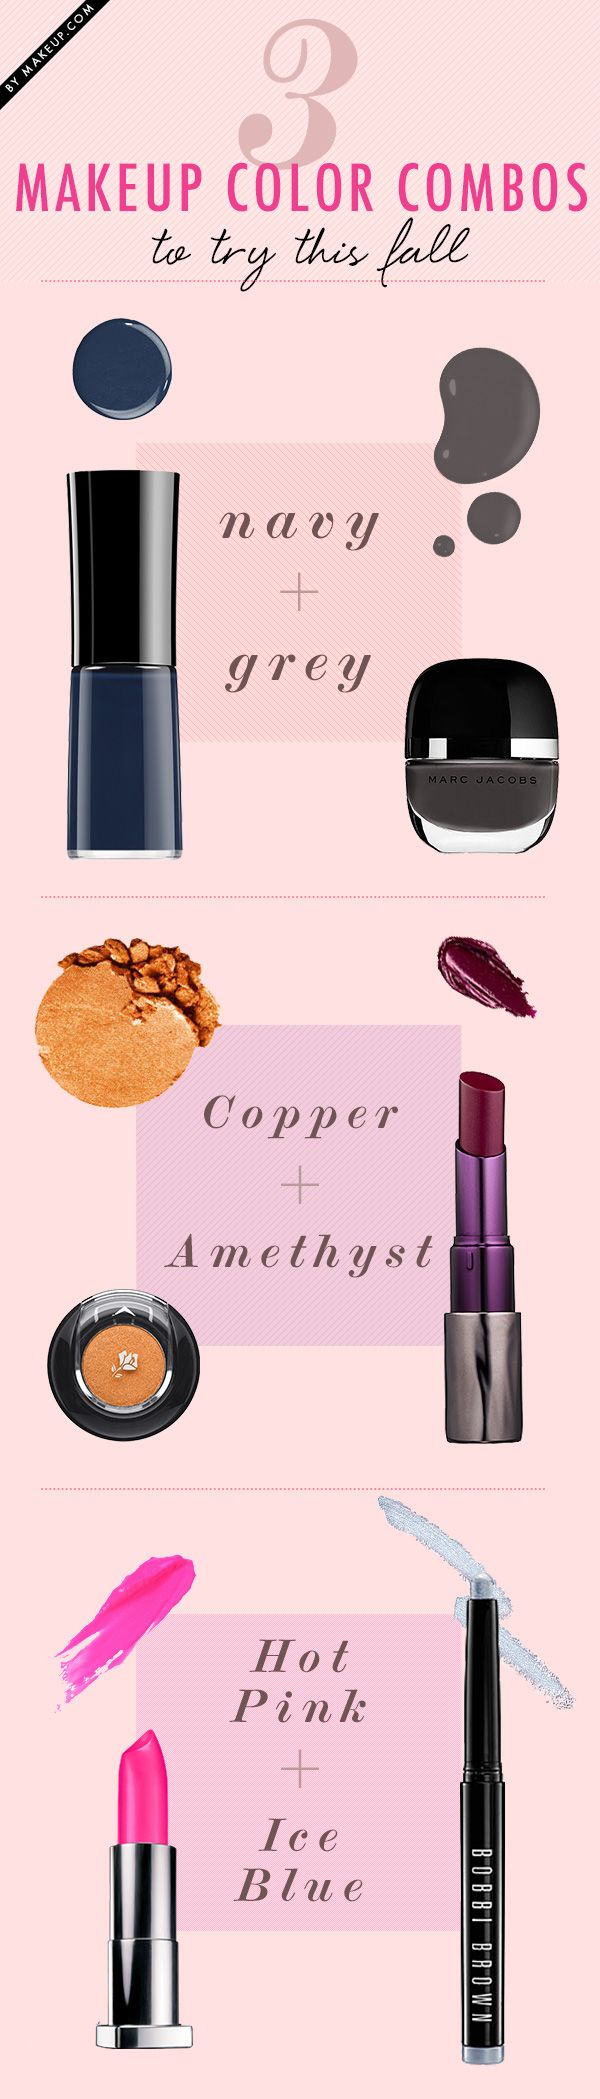 3 makeup color combos to try this winter